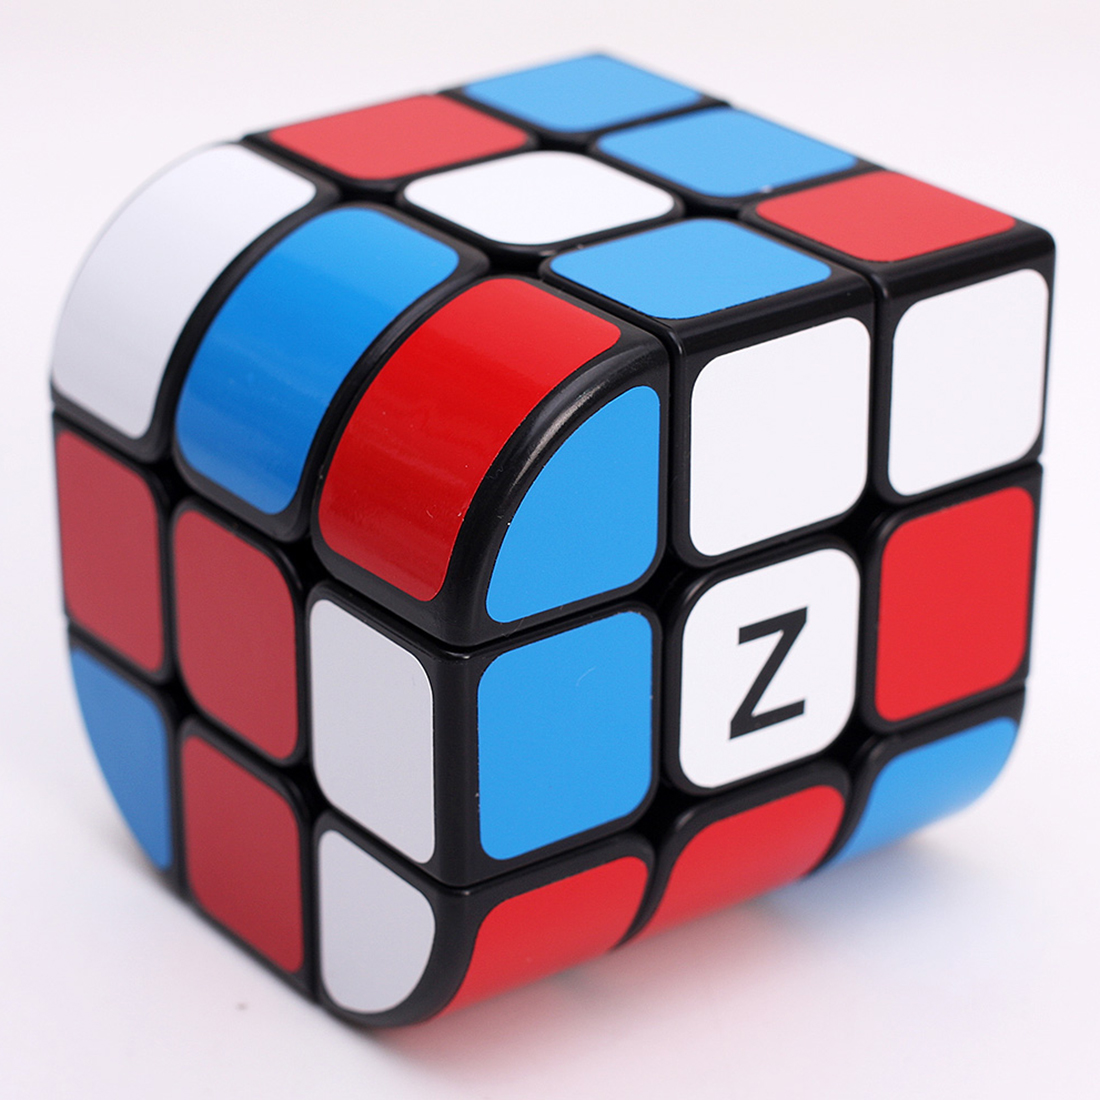 ZCUBE Penrose Cube Trihedron Magic Cube Puzzle Toys for Competition Challenge magic cube iq puzzle star color assorted